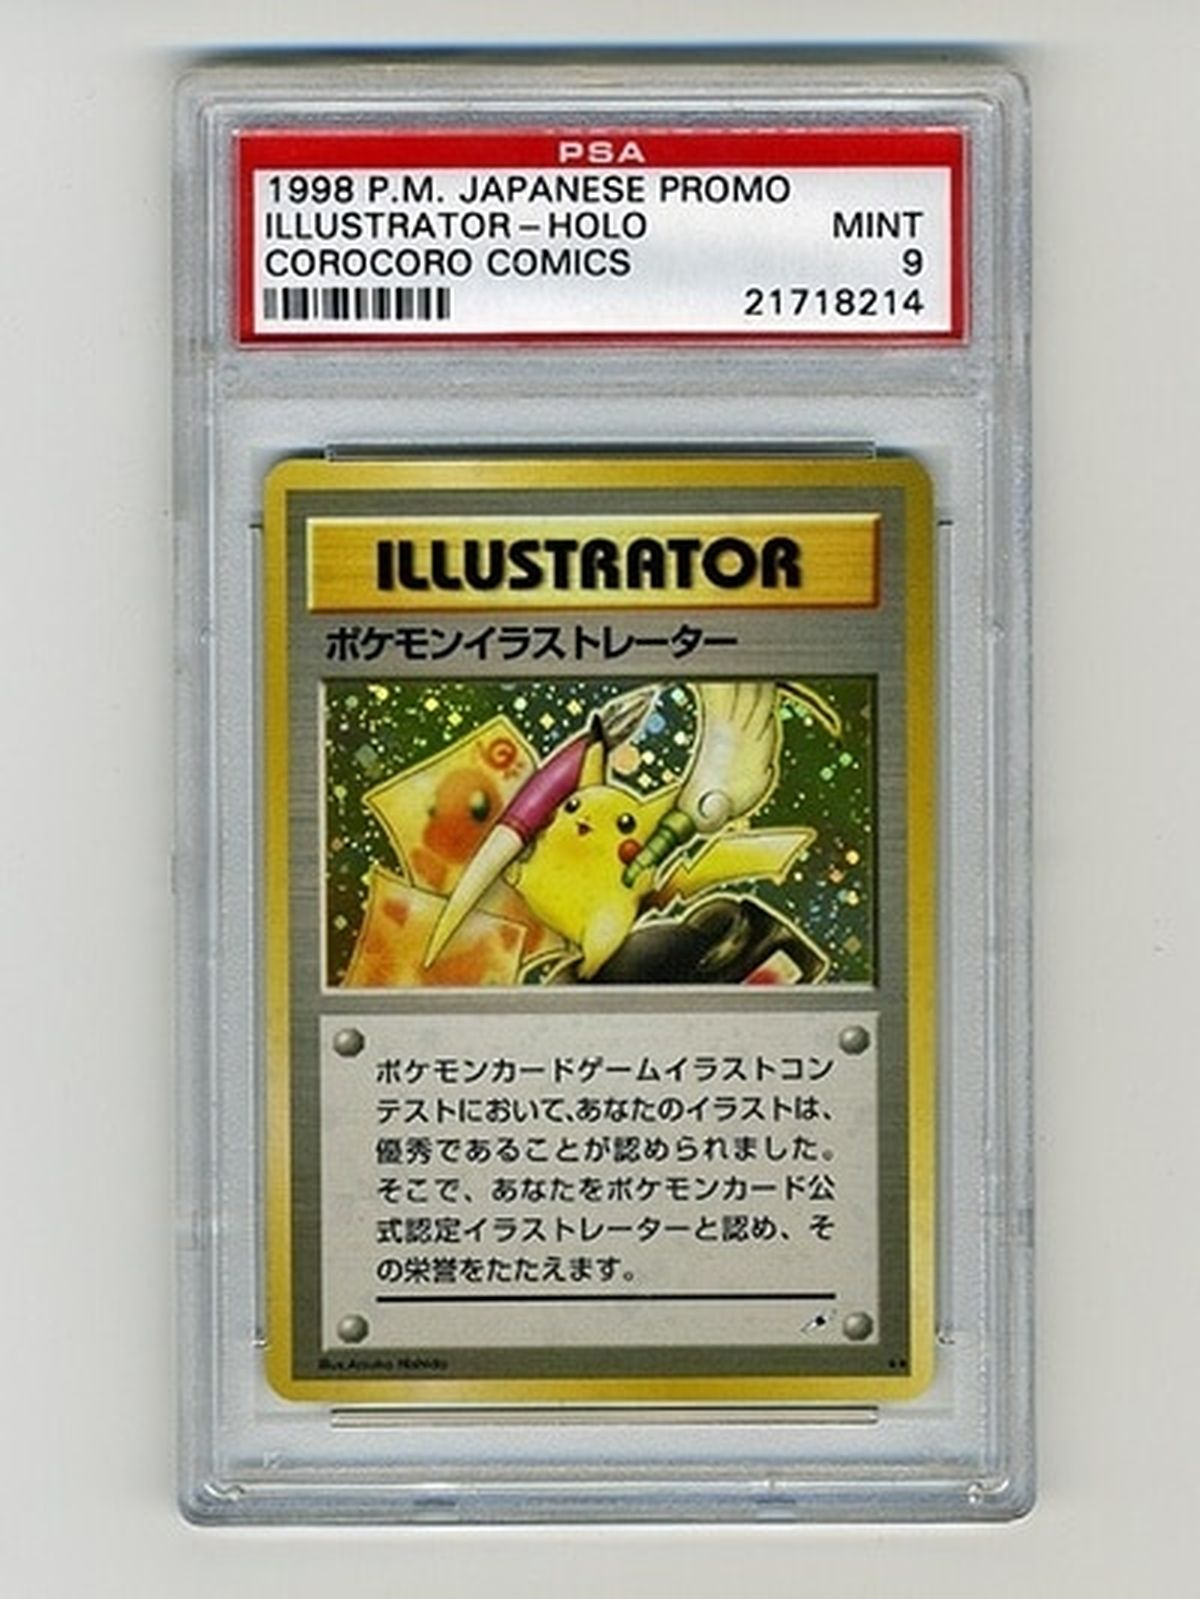 A Pokemon Charizard card, a one-time edition of the 1999 version, sold for over $ 369,000. And other Pokemon cards are also available at insane prices.